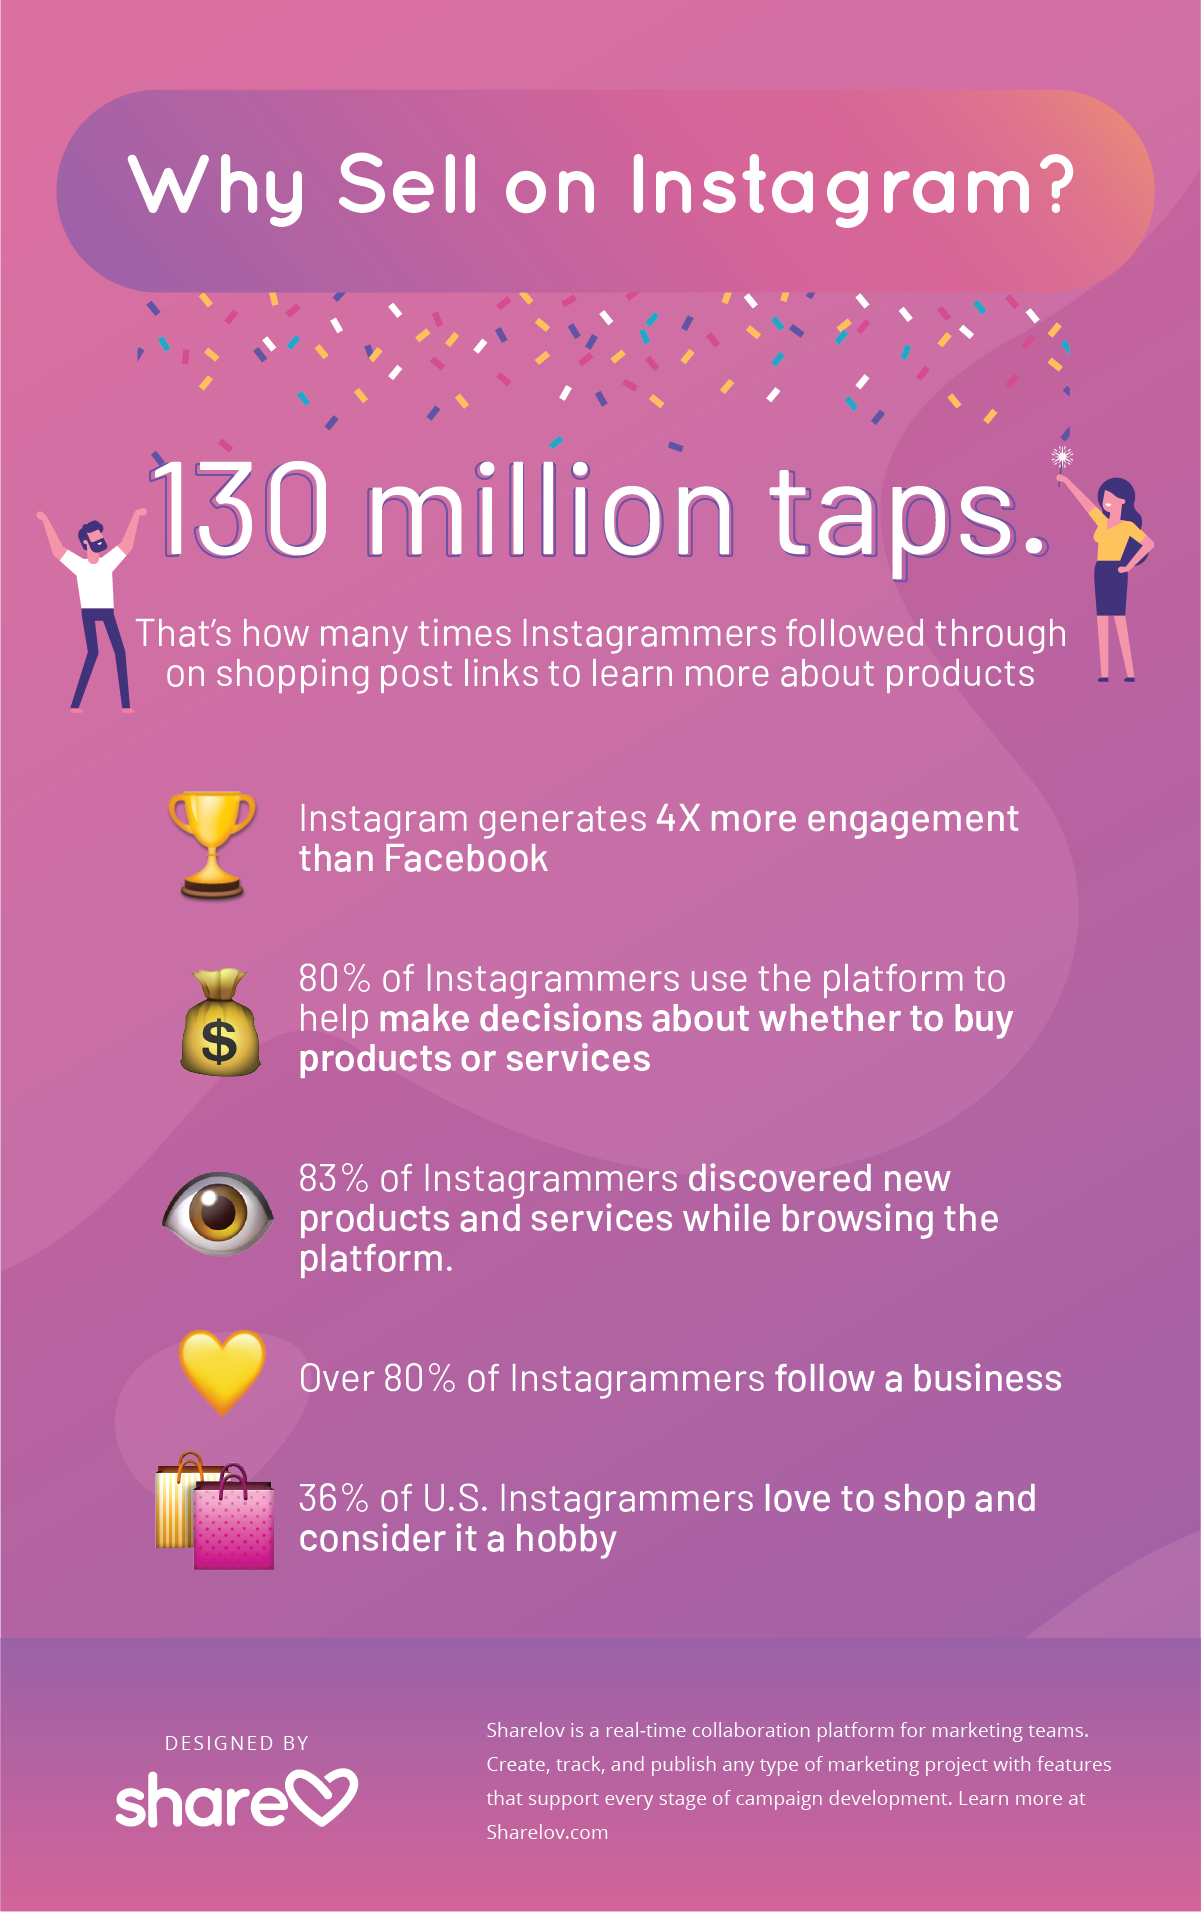 Bonus content - Why Sell on Instagram?